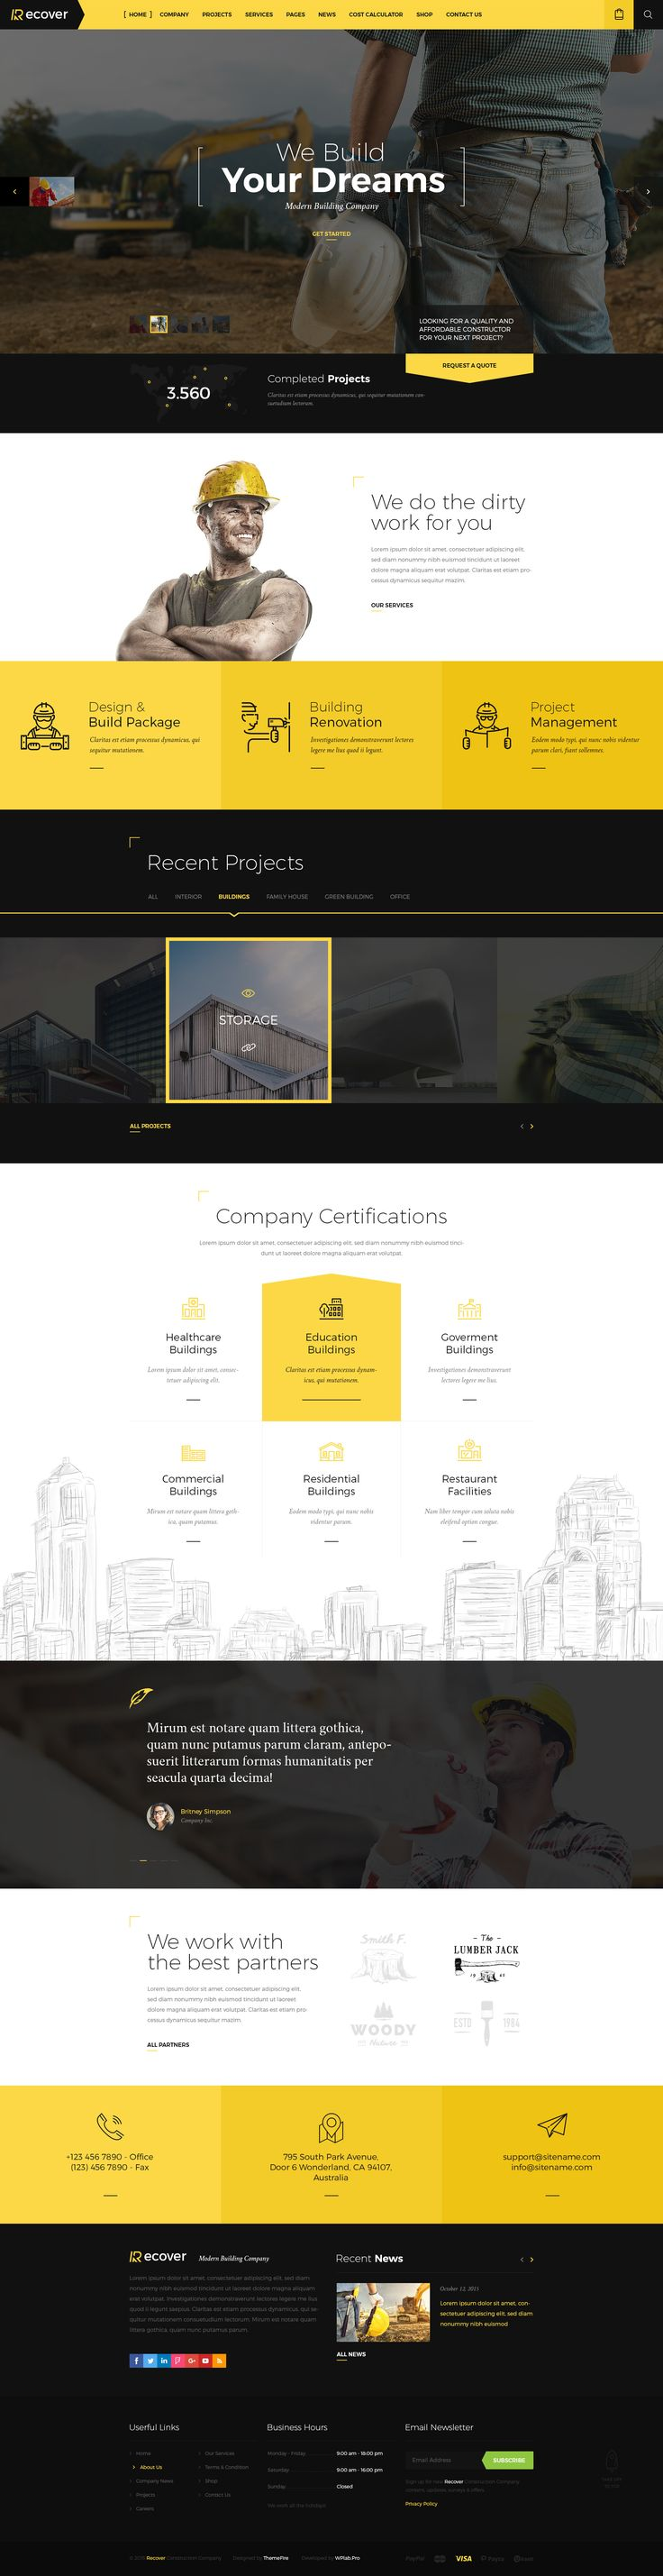 recover construction building psd template - Web Design Project Ideas